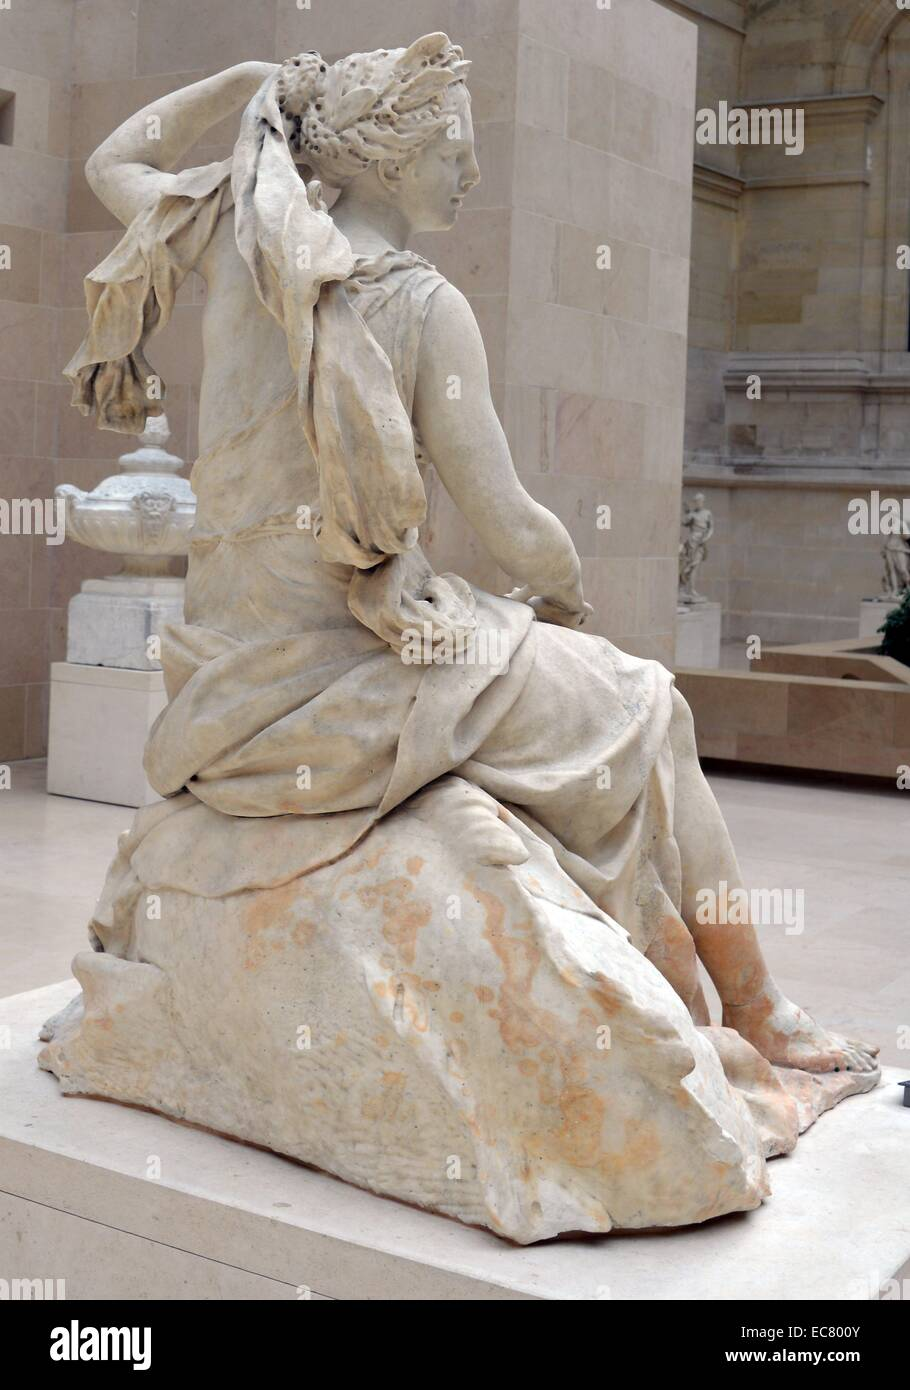 Marble statue of Amphitrite, wife of Poseidon by Charles Antoine Coysevox (1640-1720), French sculptor. Dated 17th - Stock Image